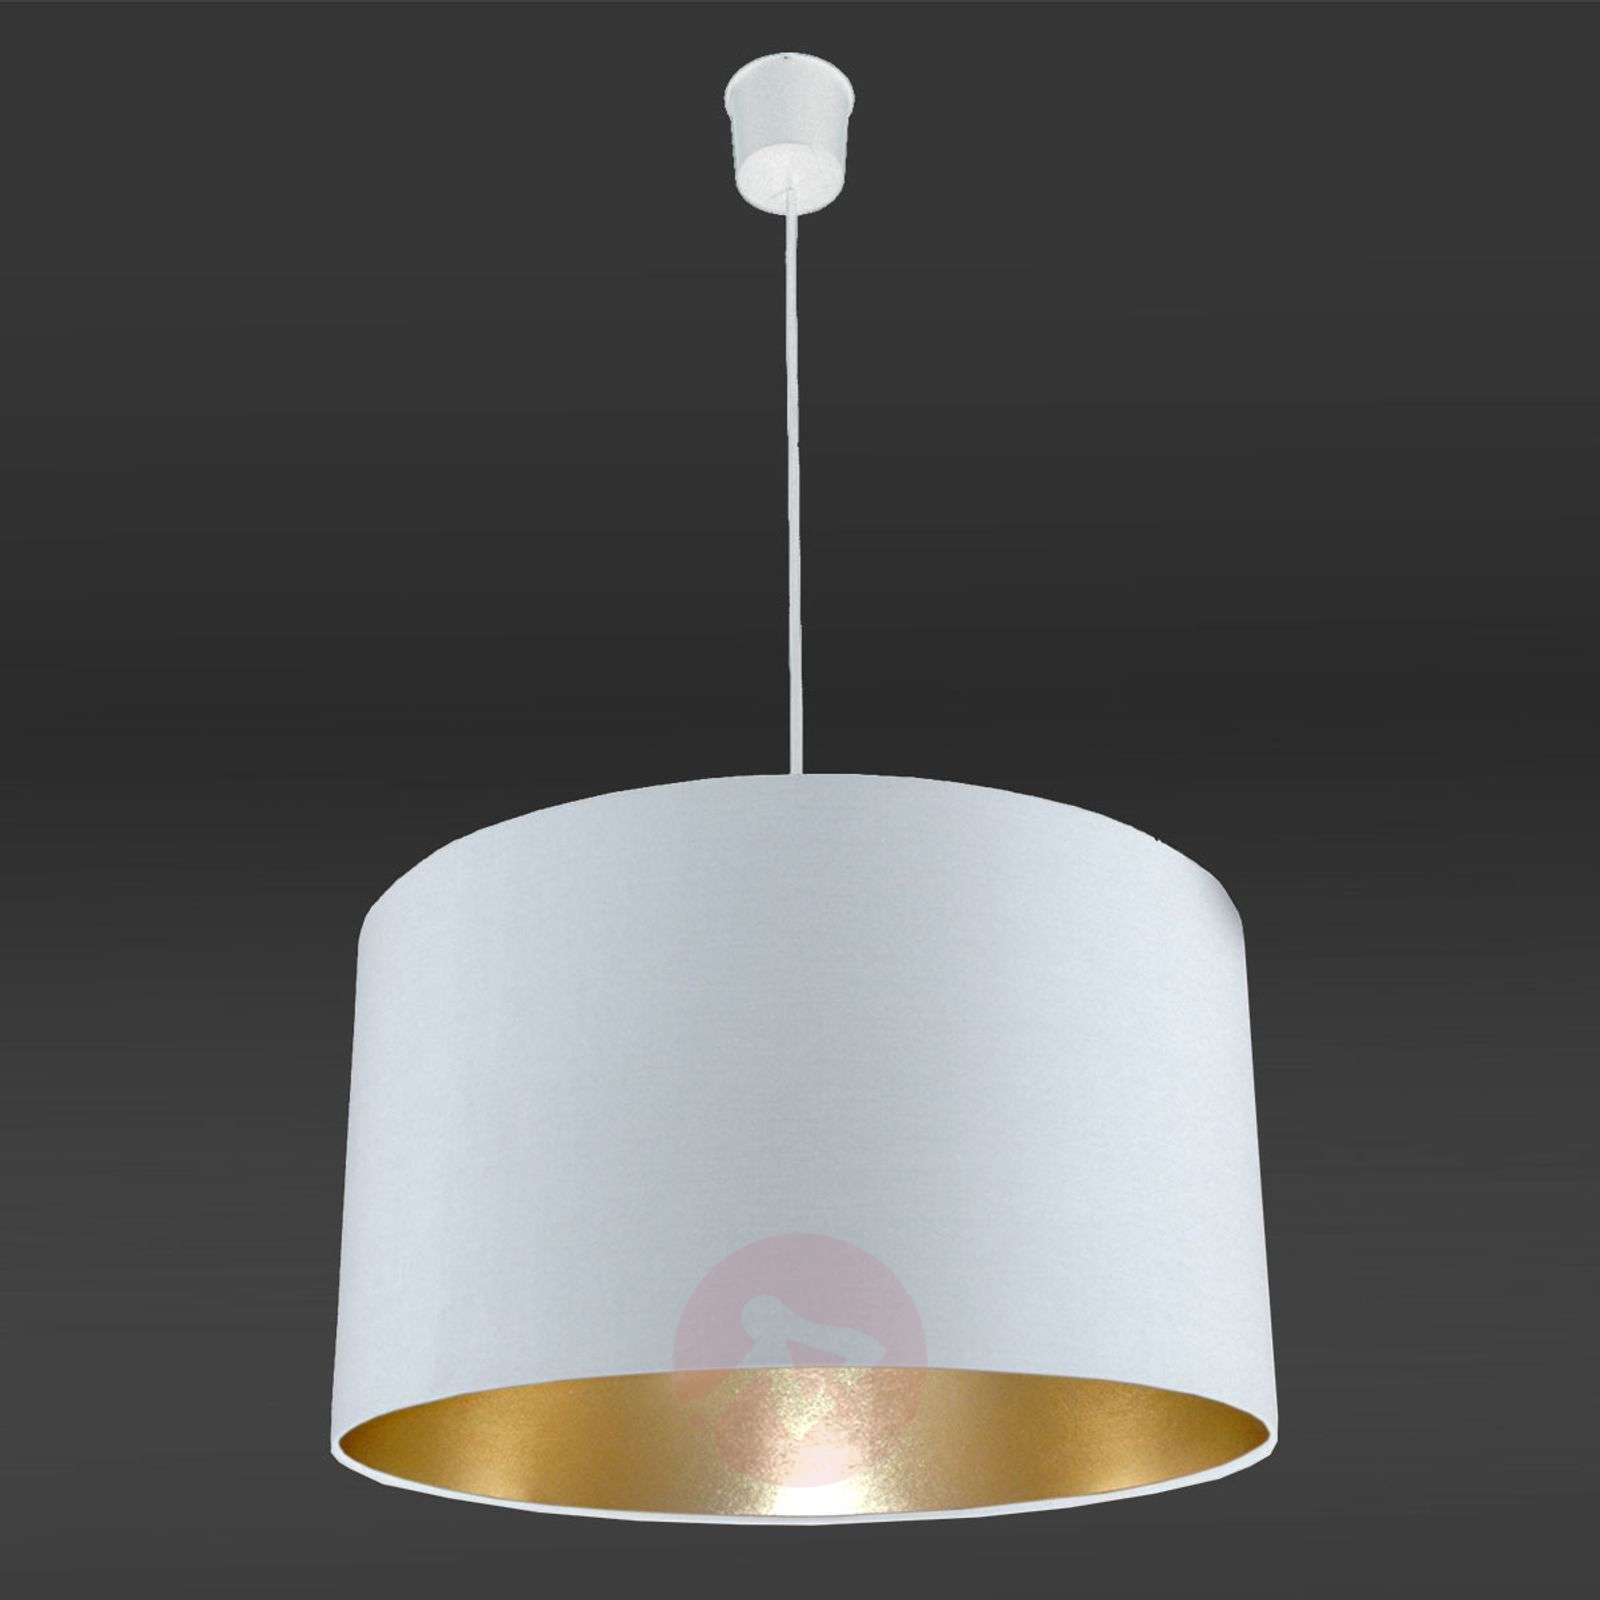 Suspension stockholm blanche int rieur dor for Suspension interieur